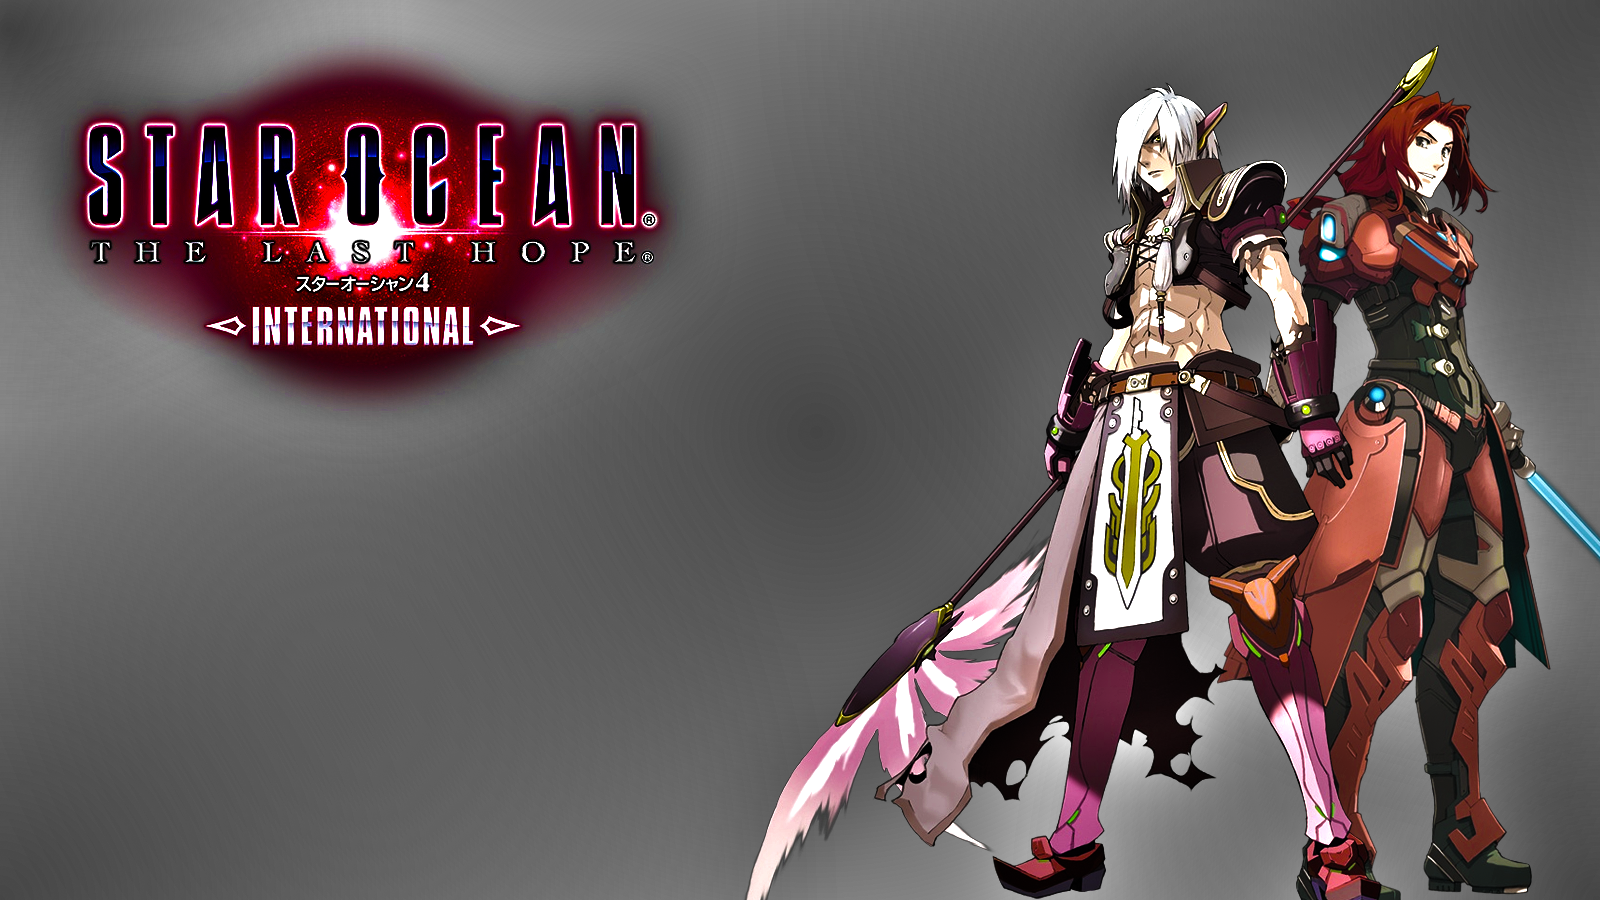 Star Ocean 4 Wallpaper 4 By Zero0303 On Deviantart